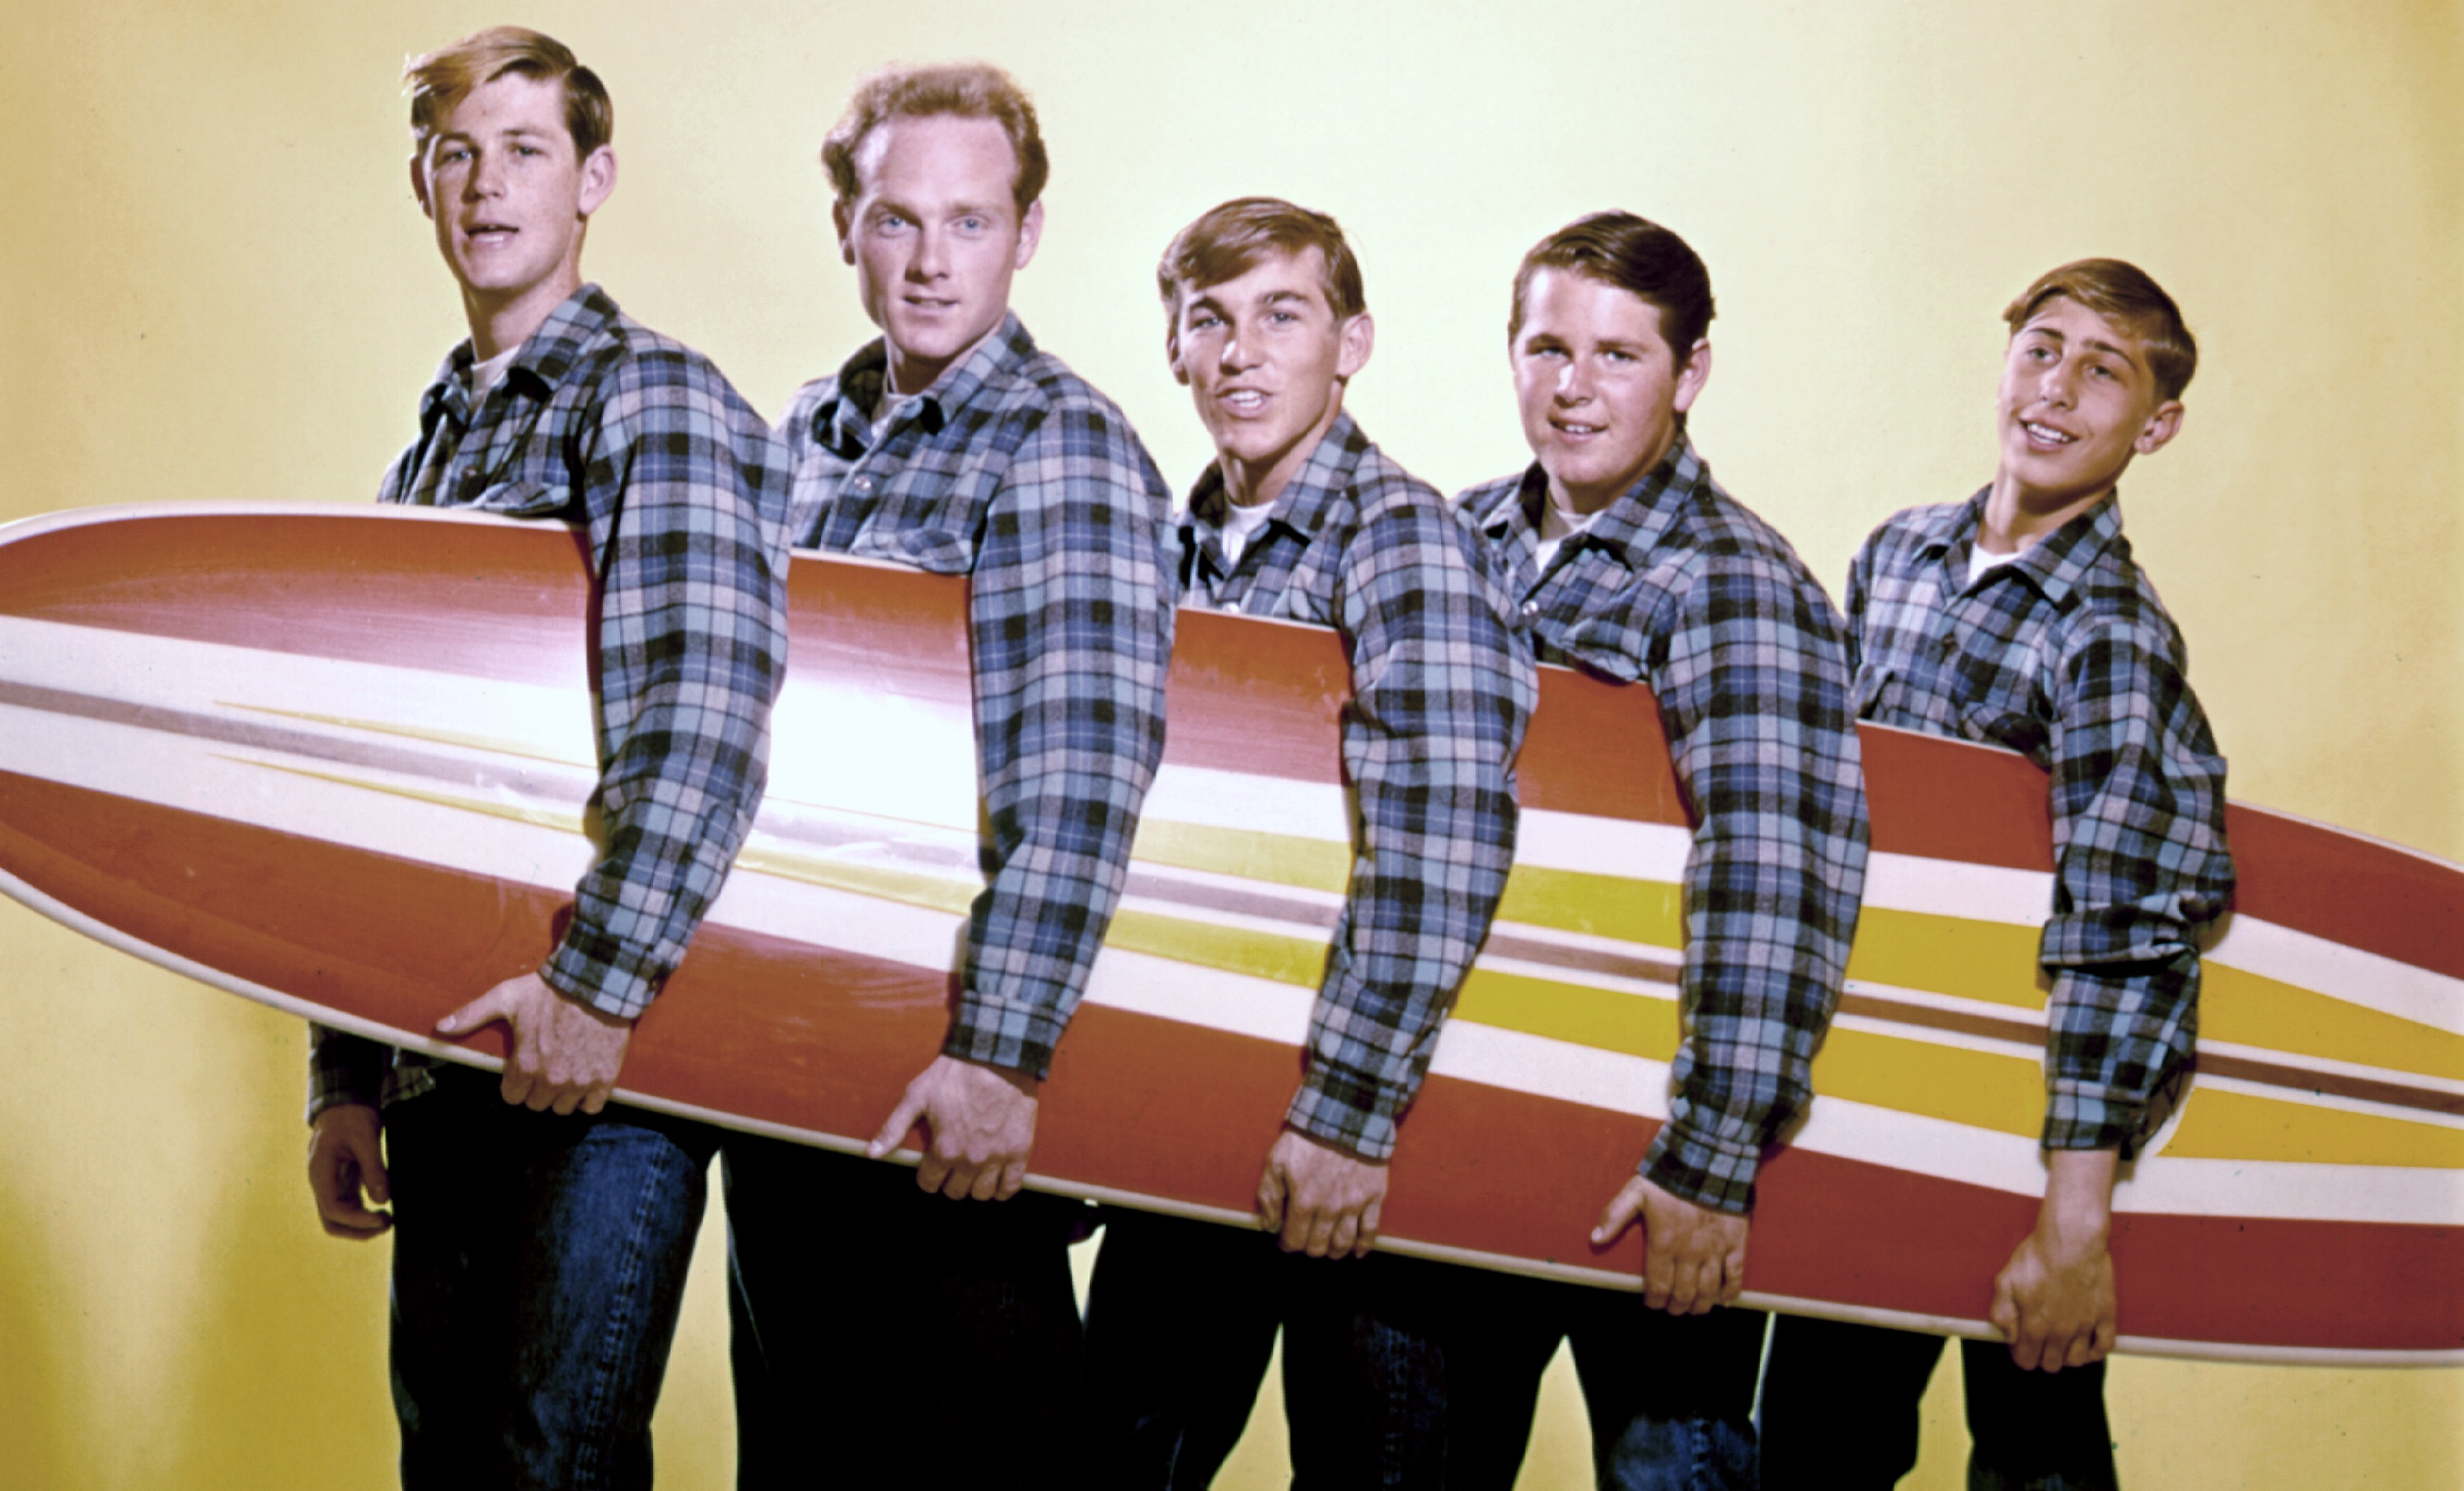 The Beach Boys images